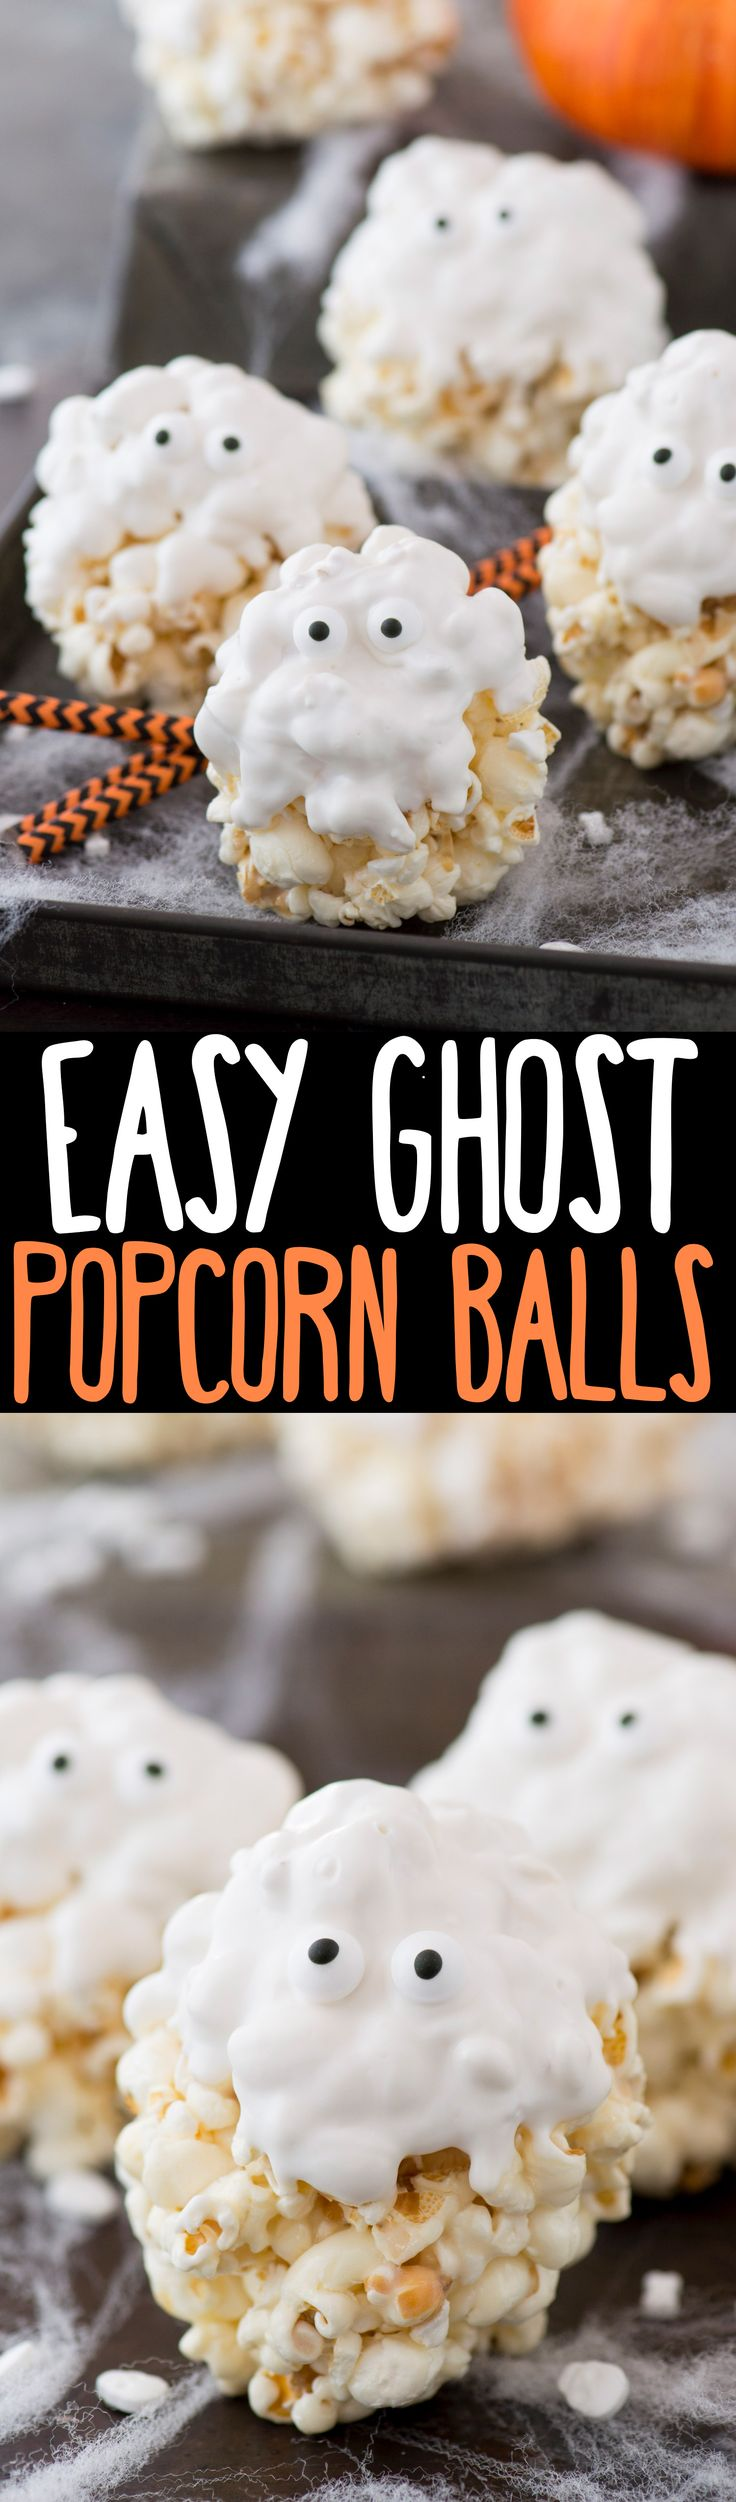 5 ingredient GHOST popcorn balls! Our family loved making this easy halloween treat!